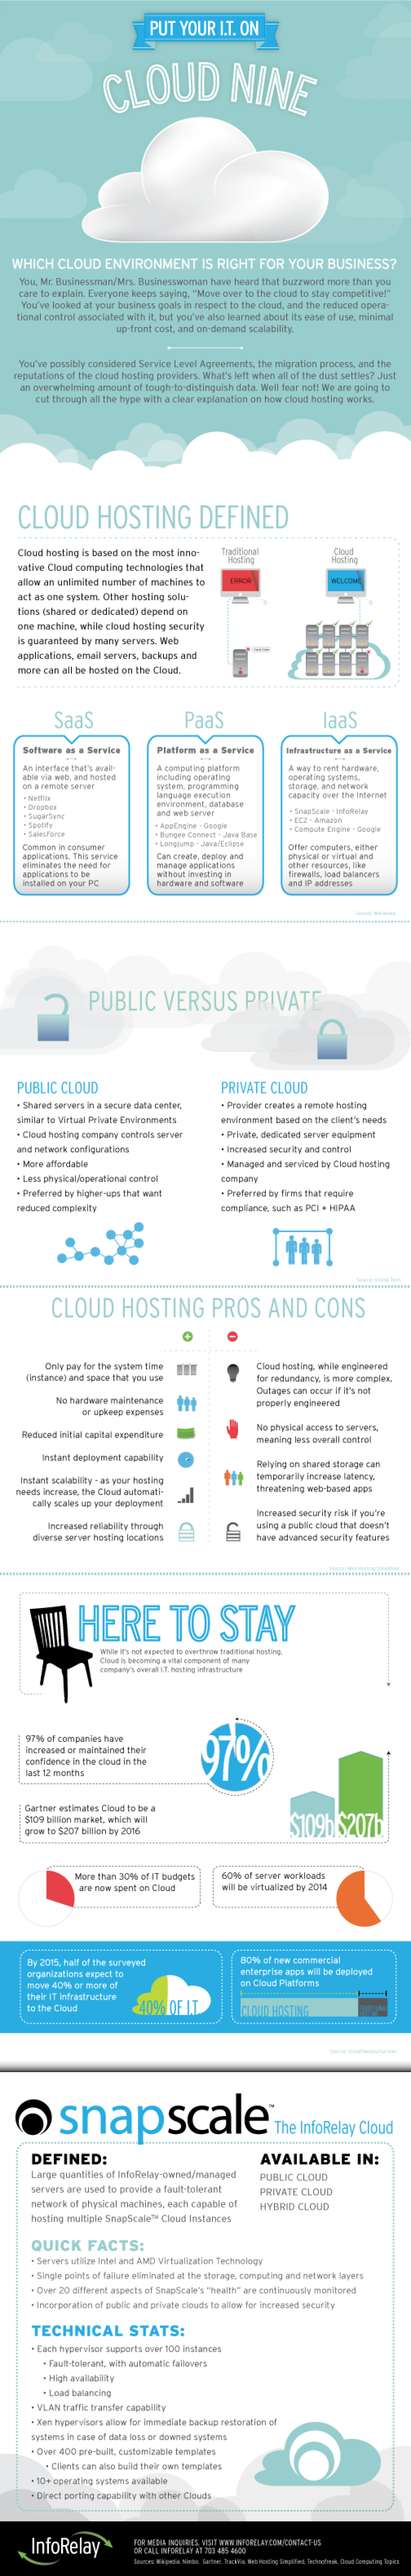 Cloud Nine Infographic